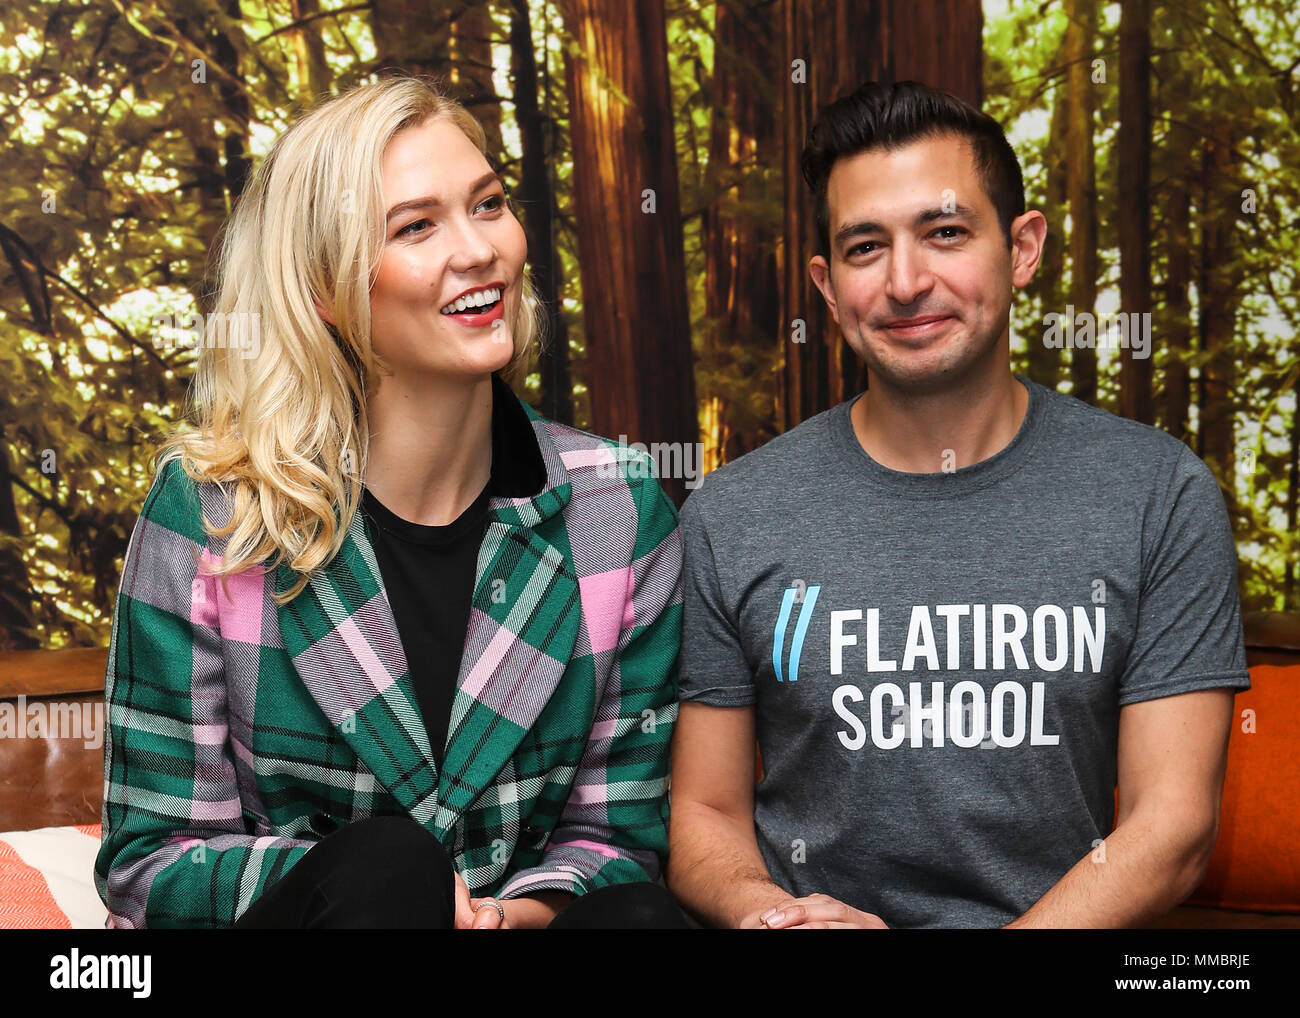 Karlie Kloss attends a photo call alongside Avi Flombaum, co